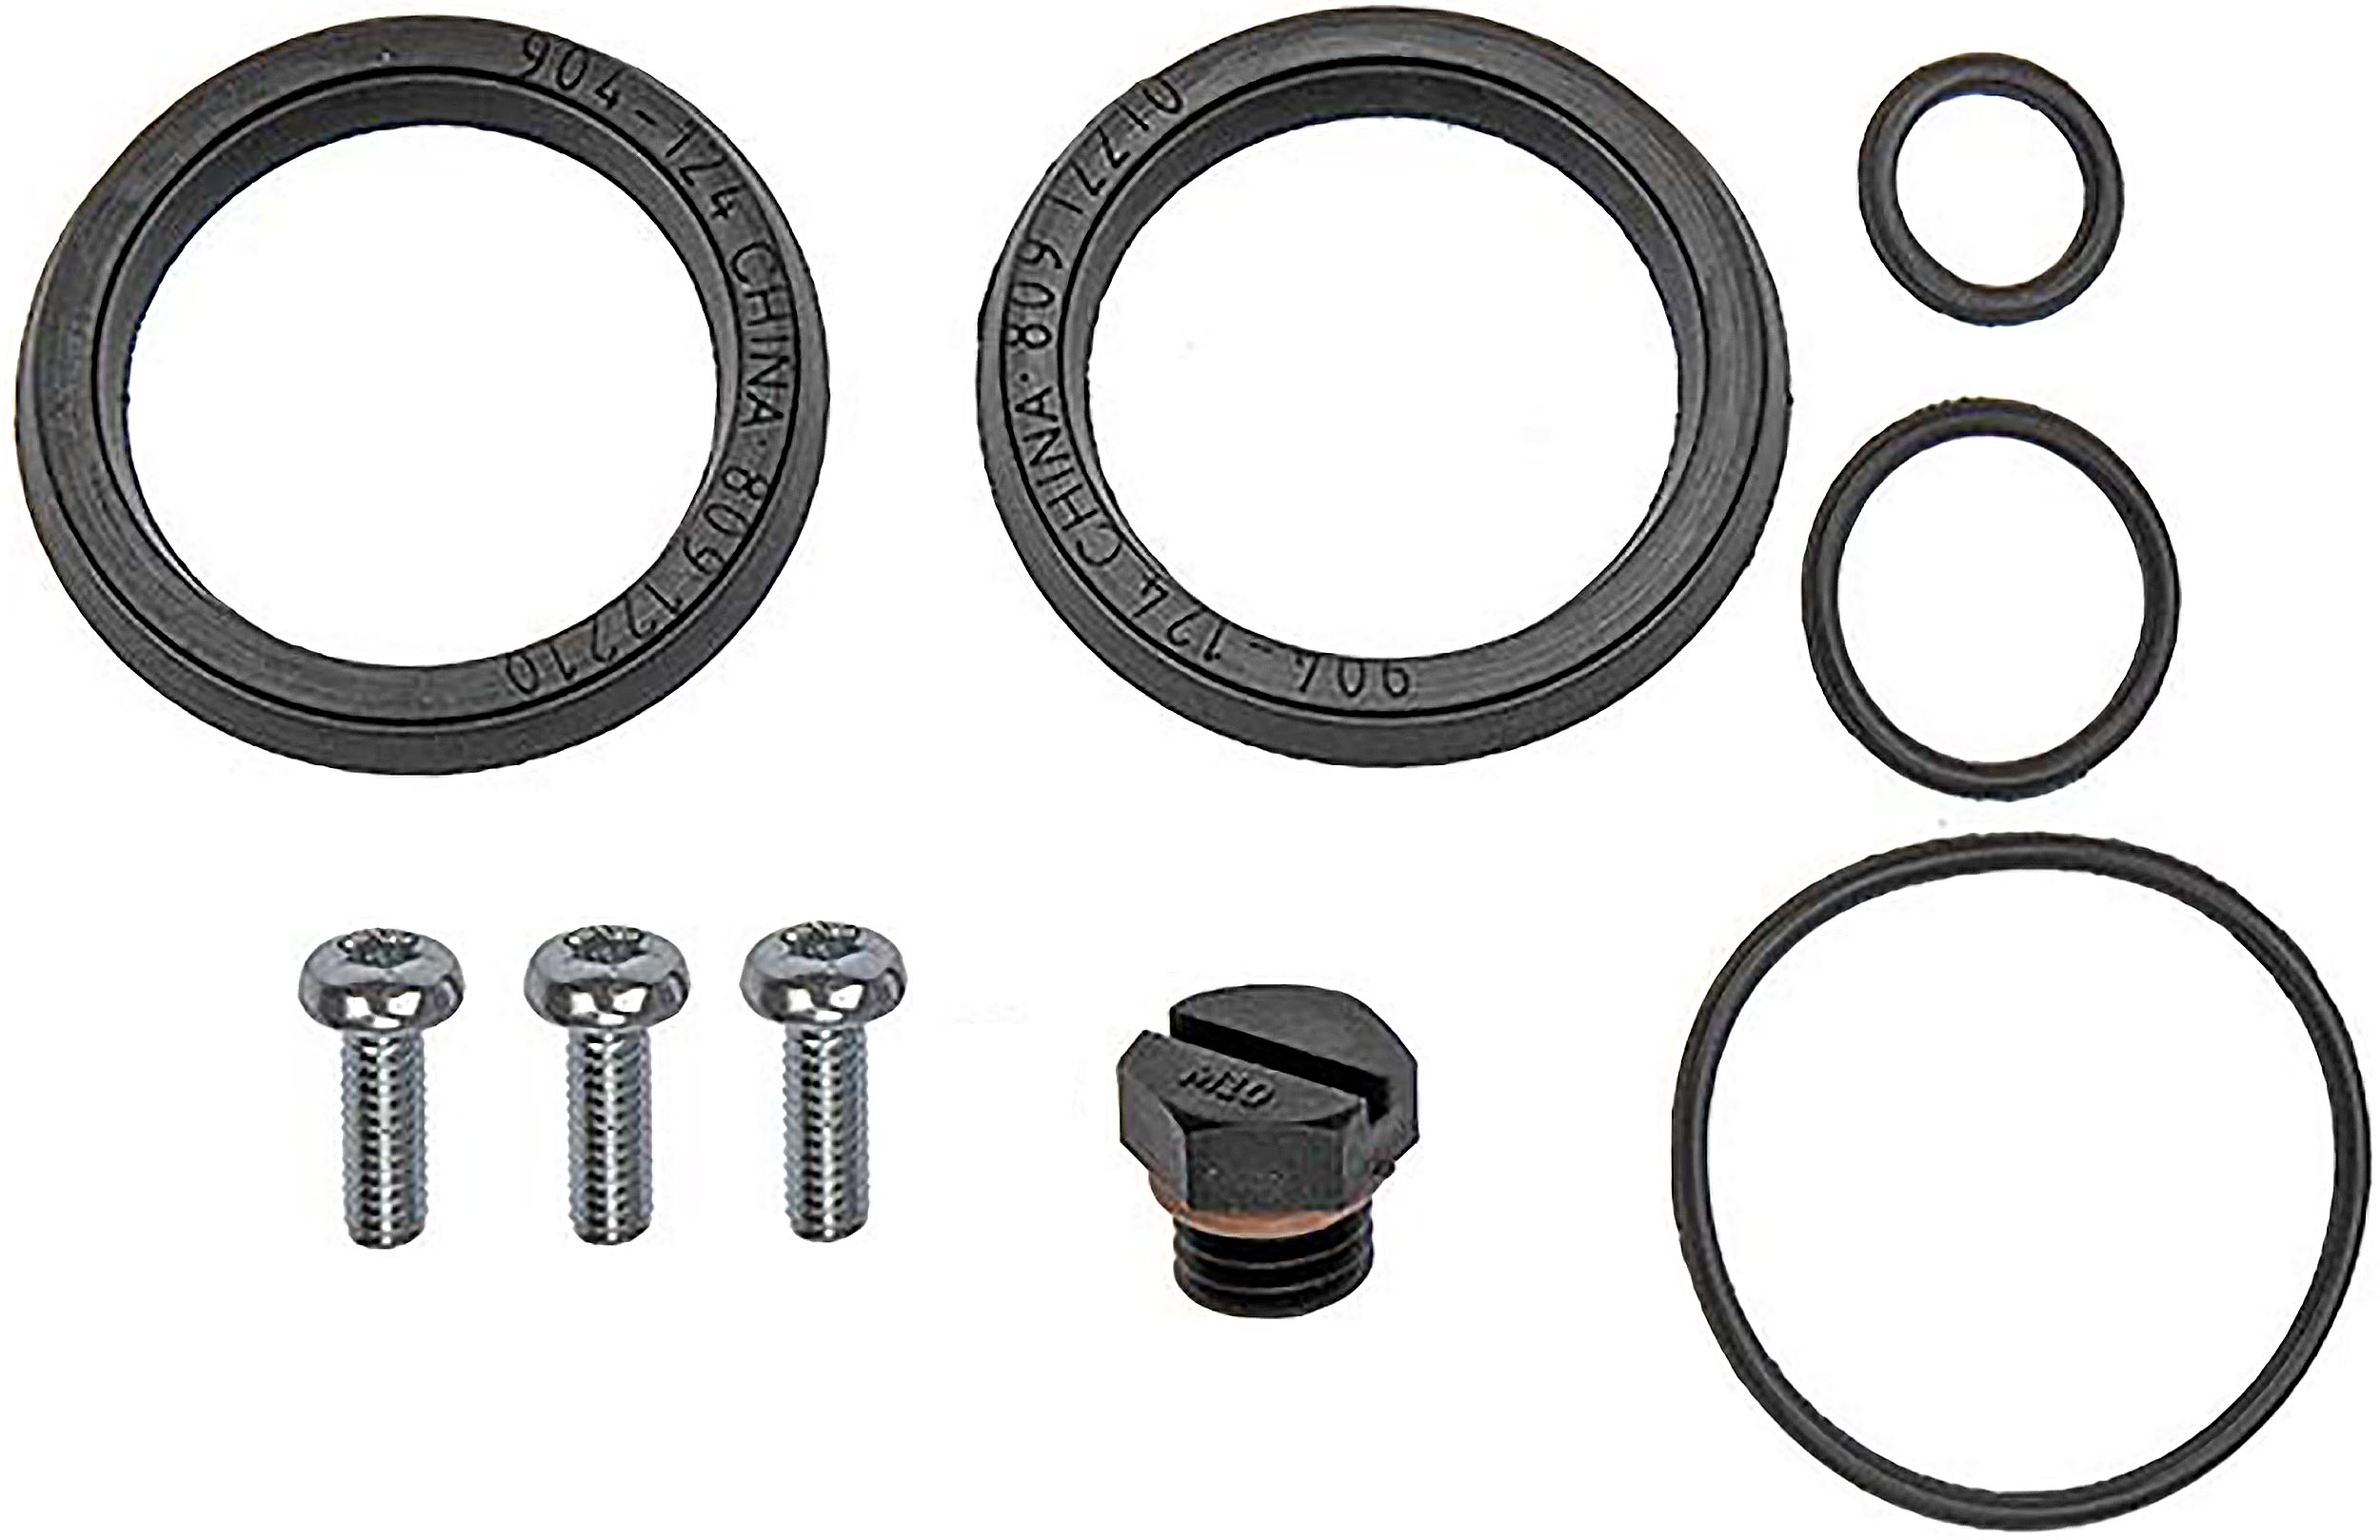 APDTY 112618 Fuel Filter Primer Housing Seal Kit Fits GM w